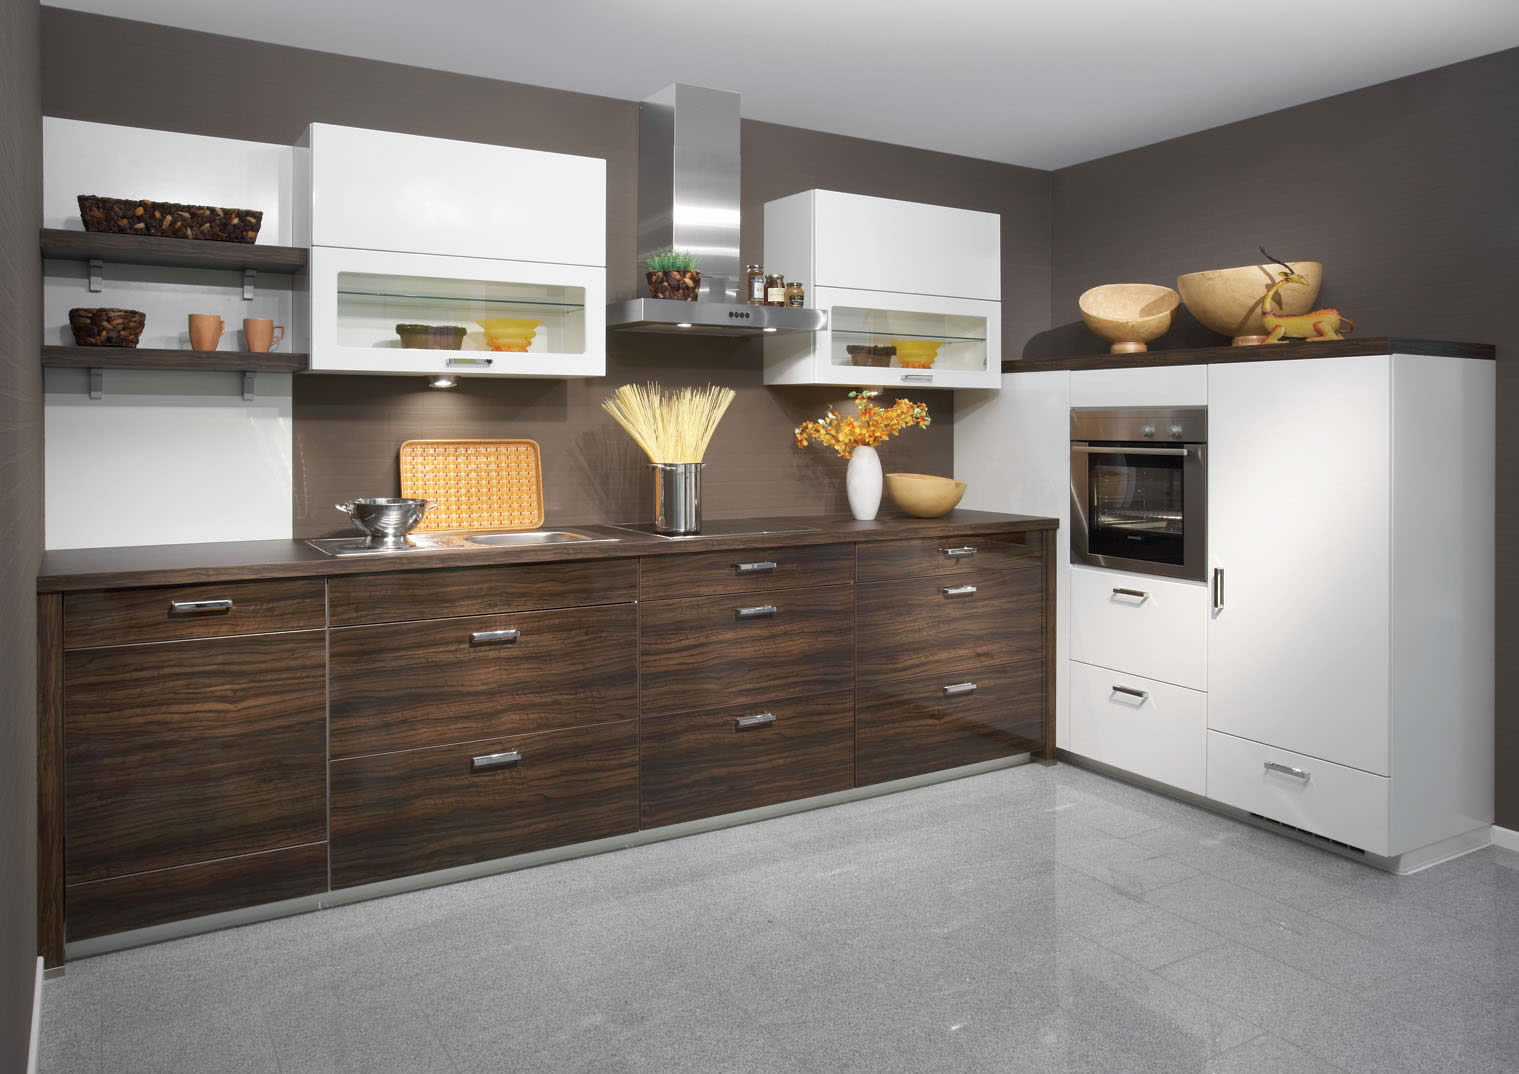 Top Kitchen Design 1519 x 1074 · 144 kB · jpeg